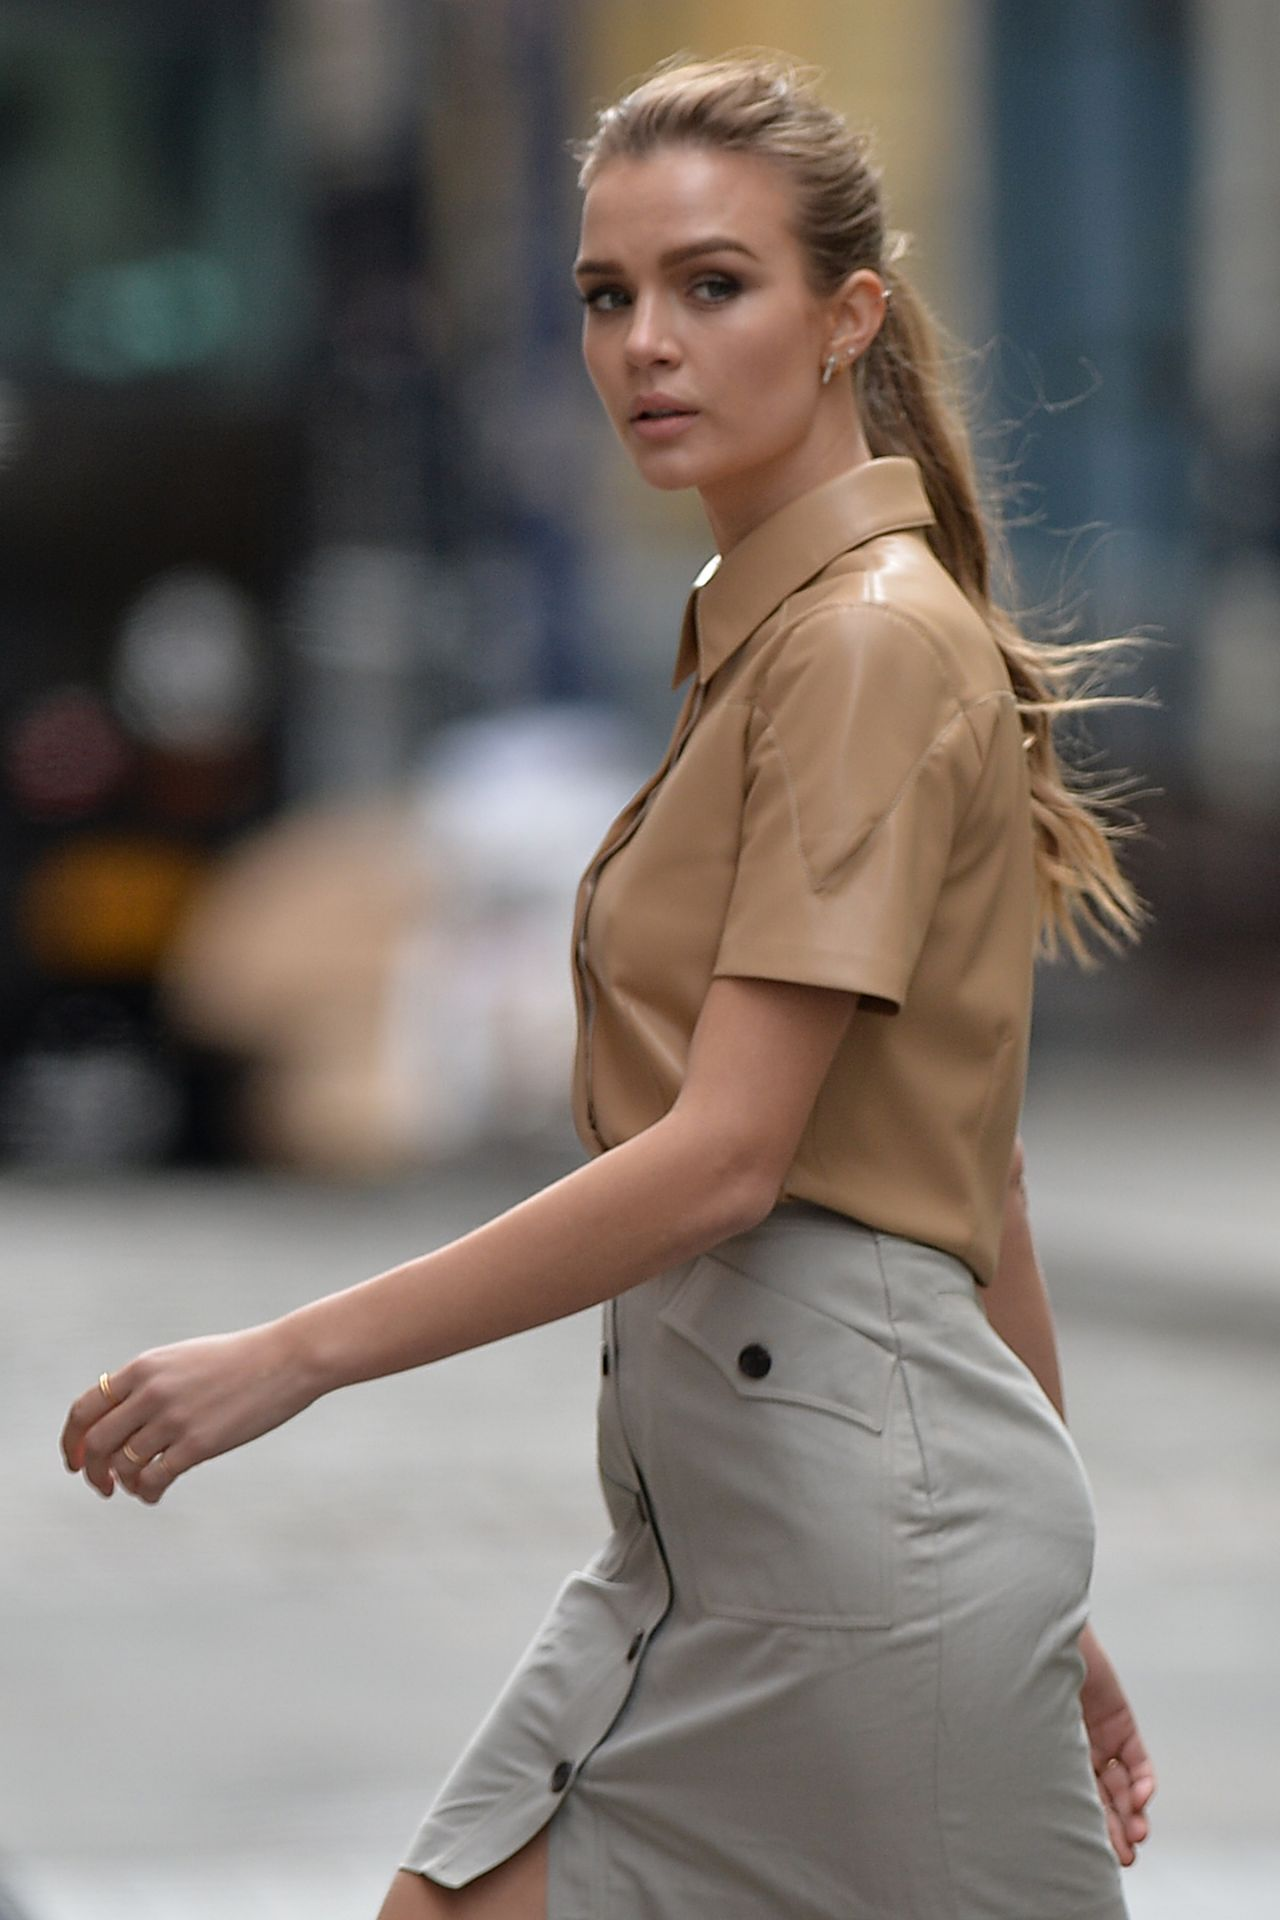 Josephine Skriver Shooting A Maybelline Commercial In Nyc 03 22 2019